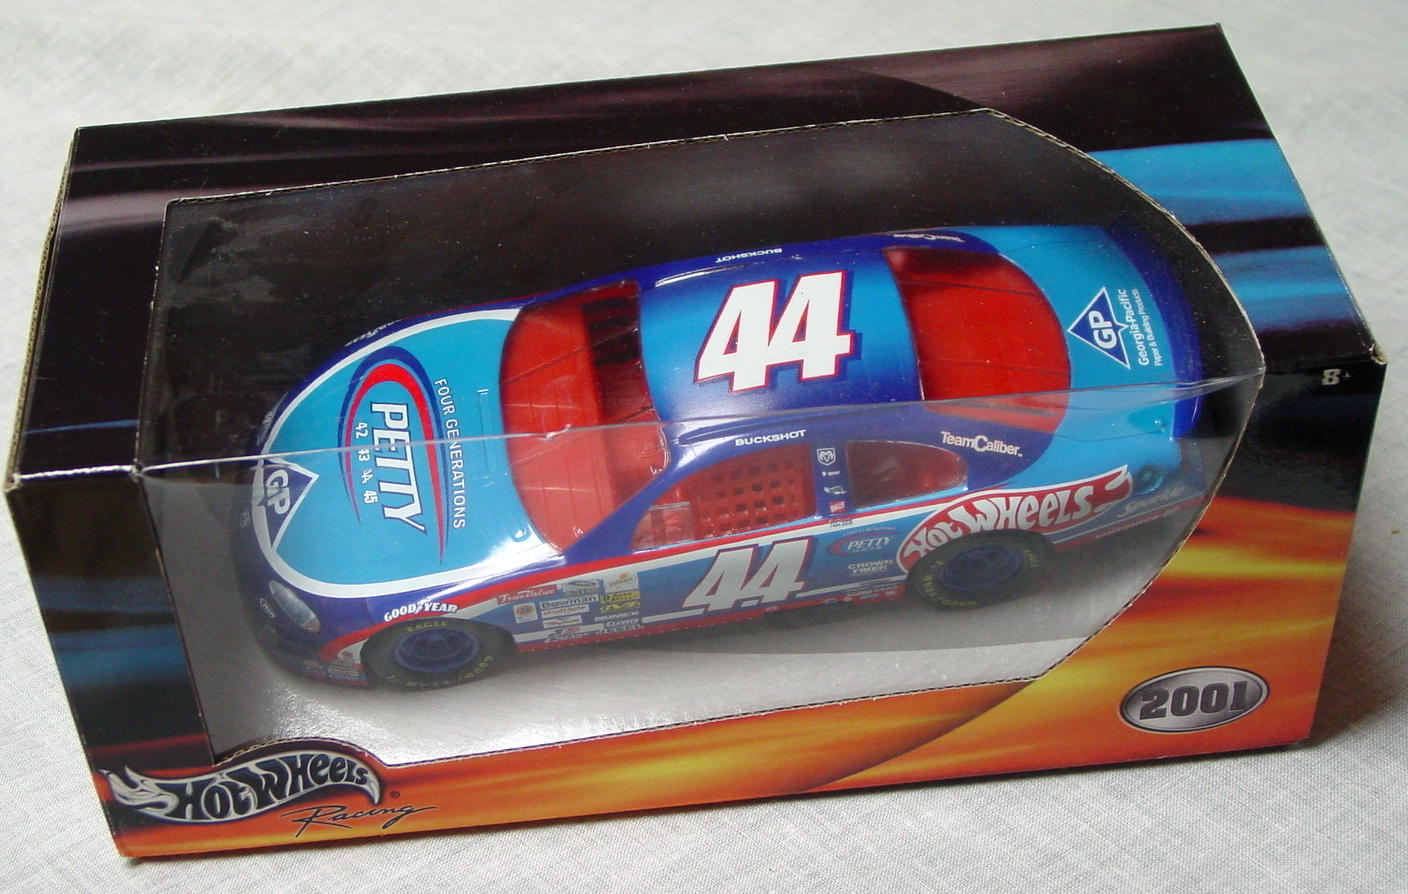 1_24 Scale - HW Richard Petty 44 Blue/lt Blue